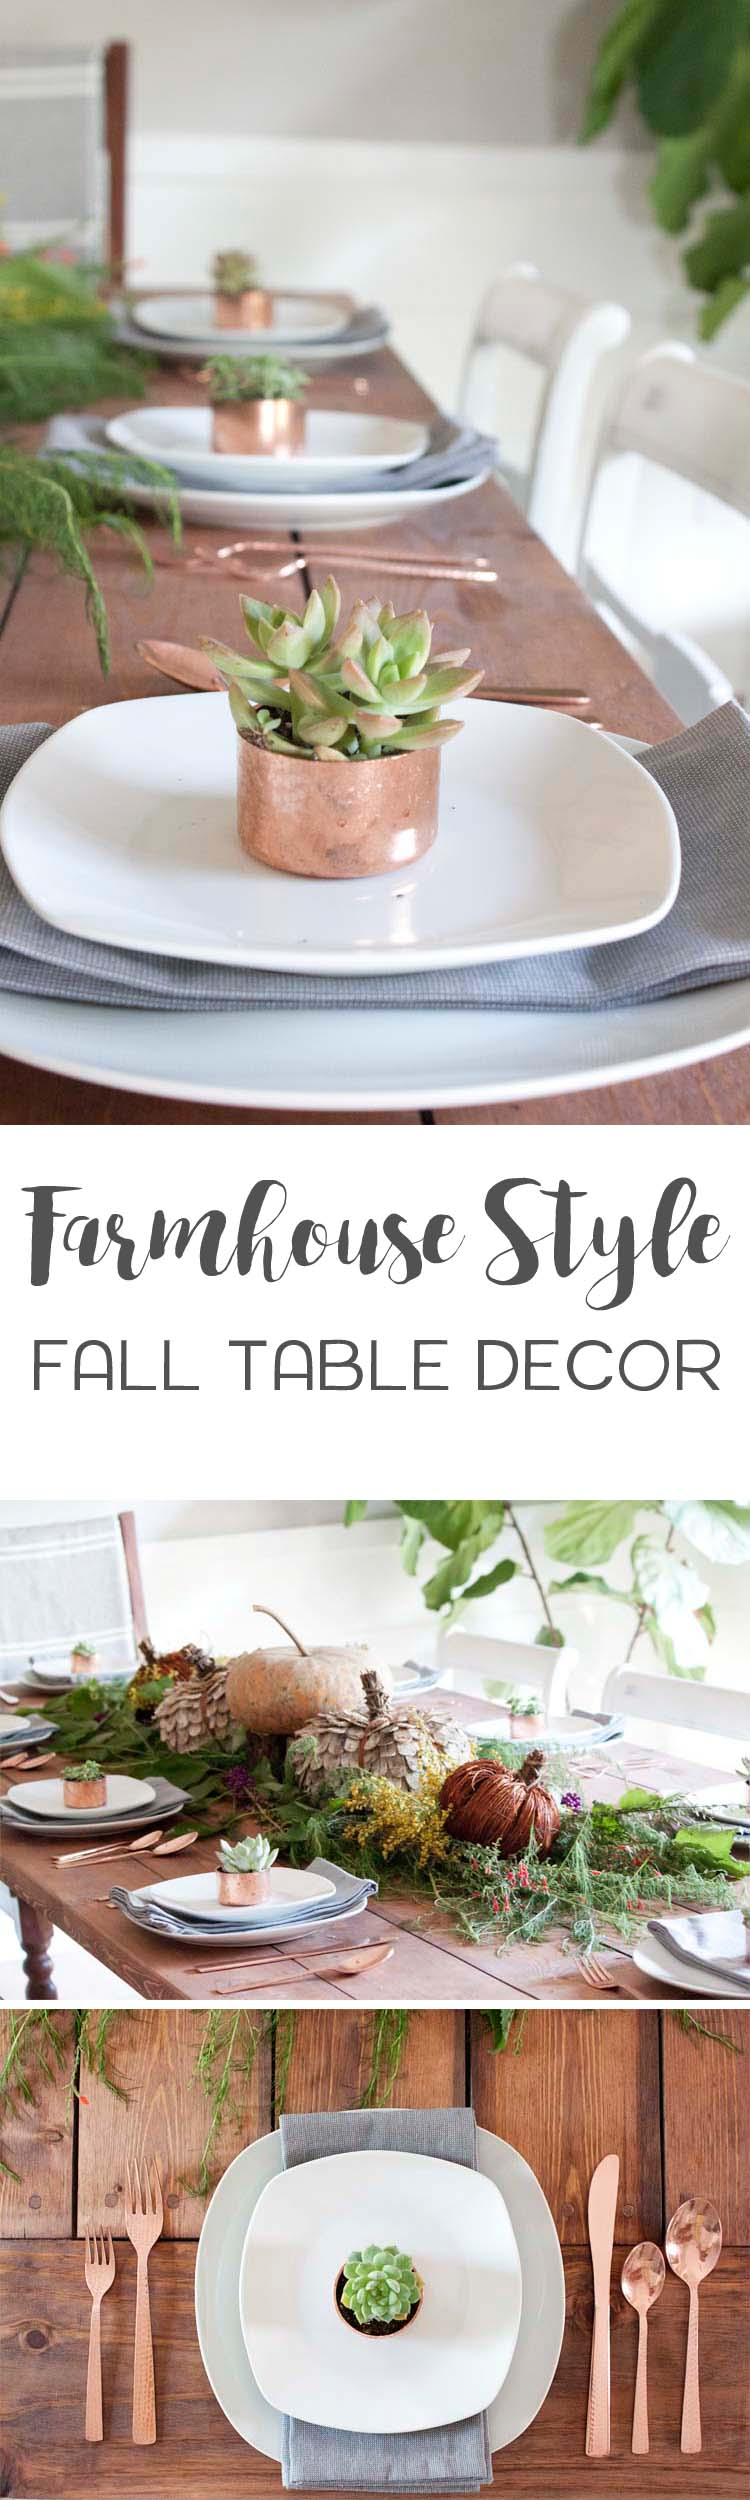 Rustic and natural touches mixed with warm copper accents make this farmhouse style table setting ideal for fall.